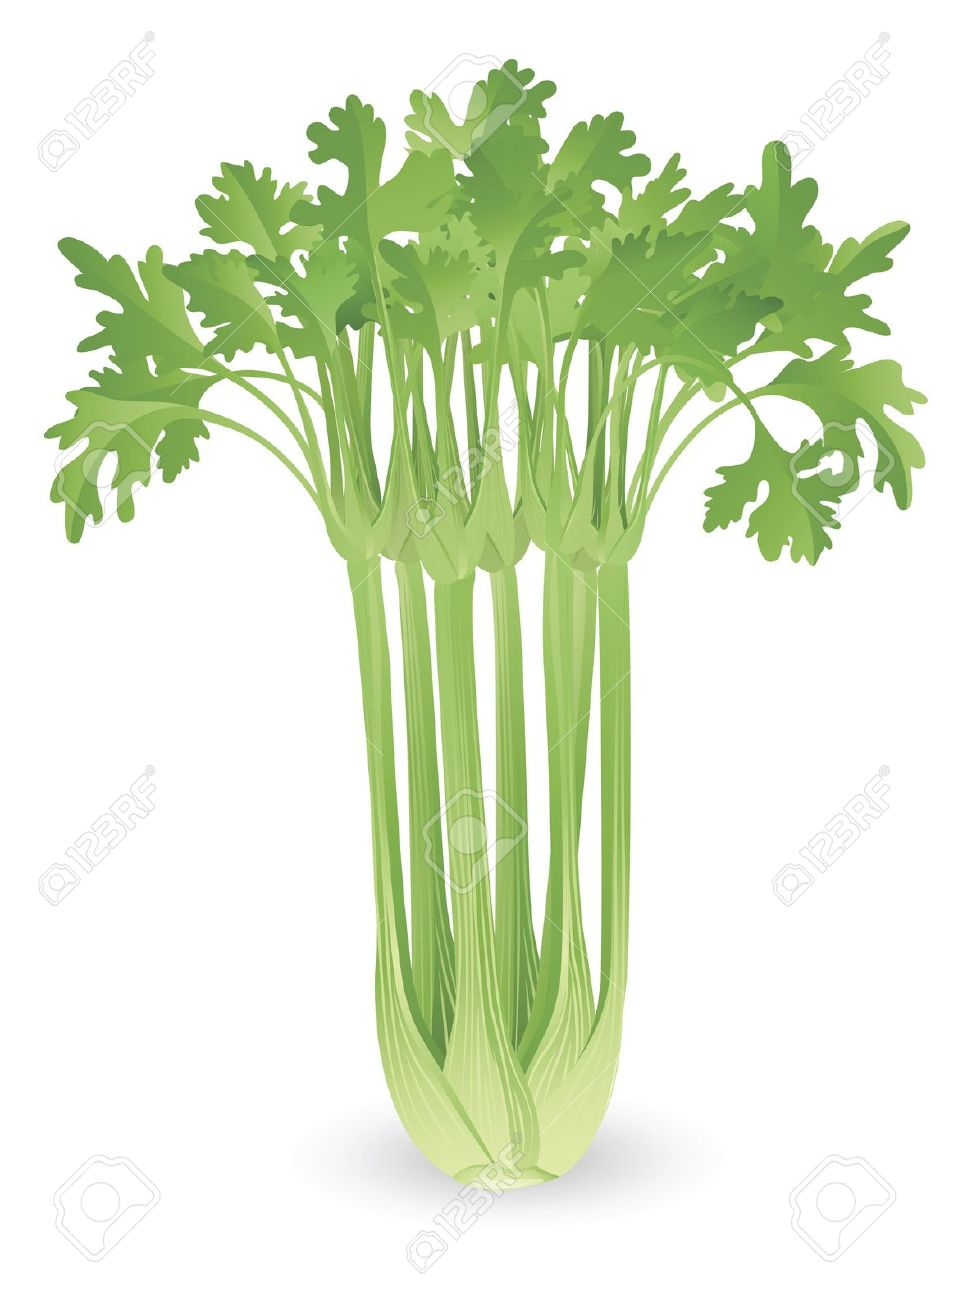 2,186 Celery Stock Illustrations, Cliparts And Royalty Free Celery.